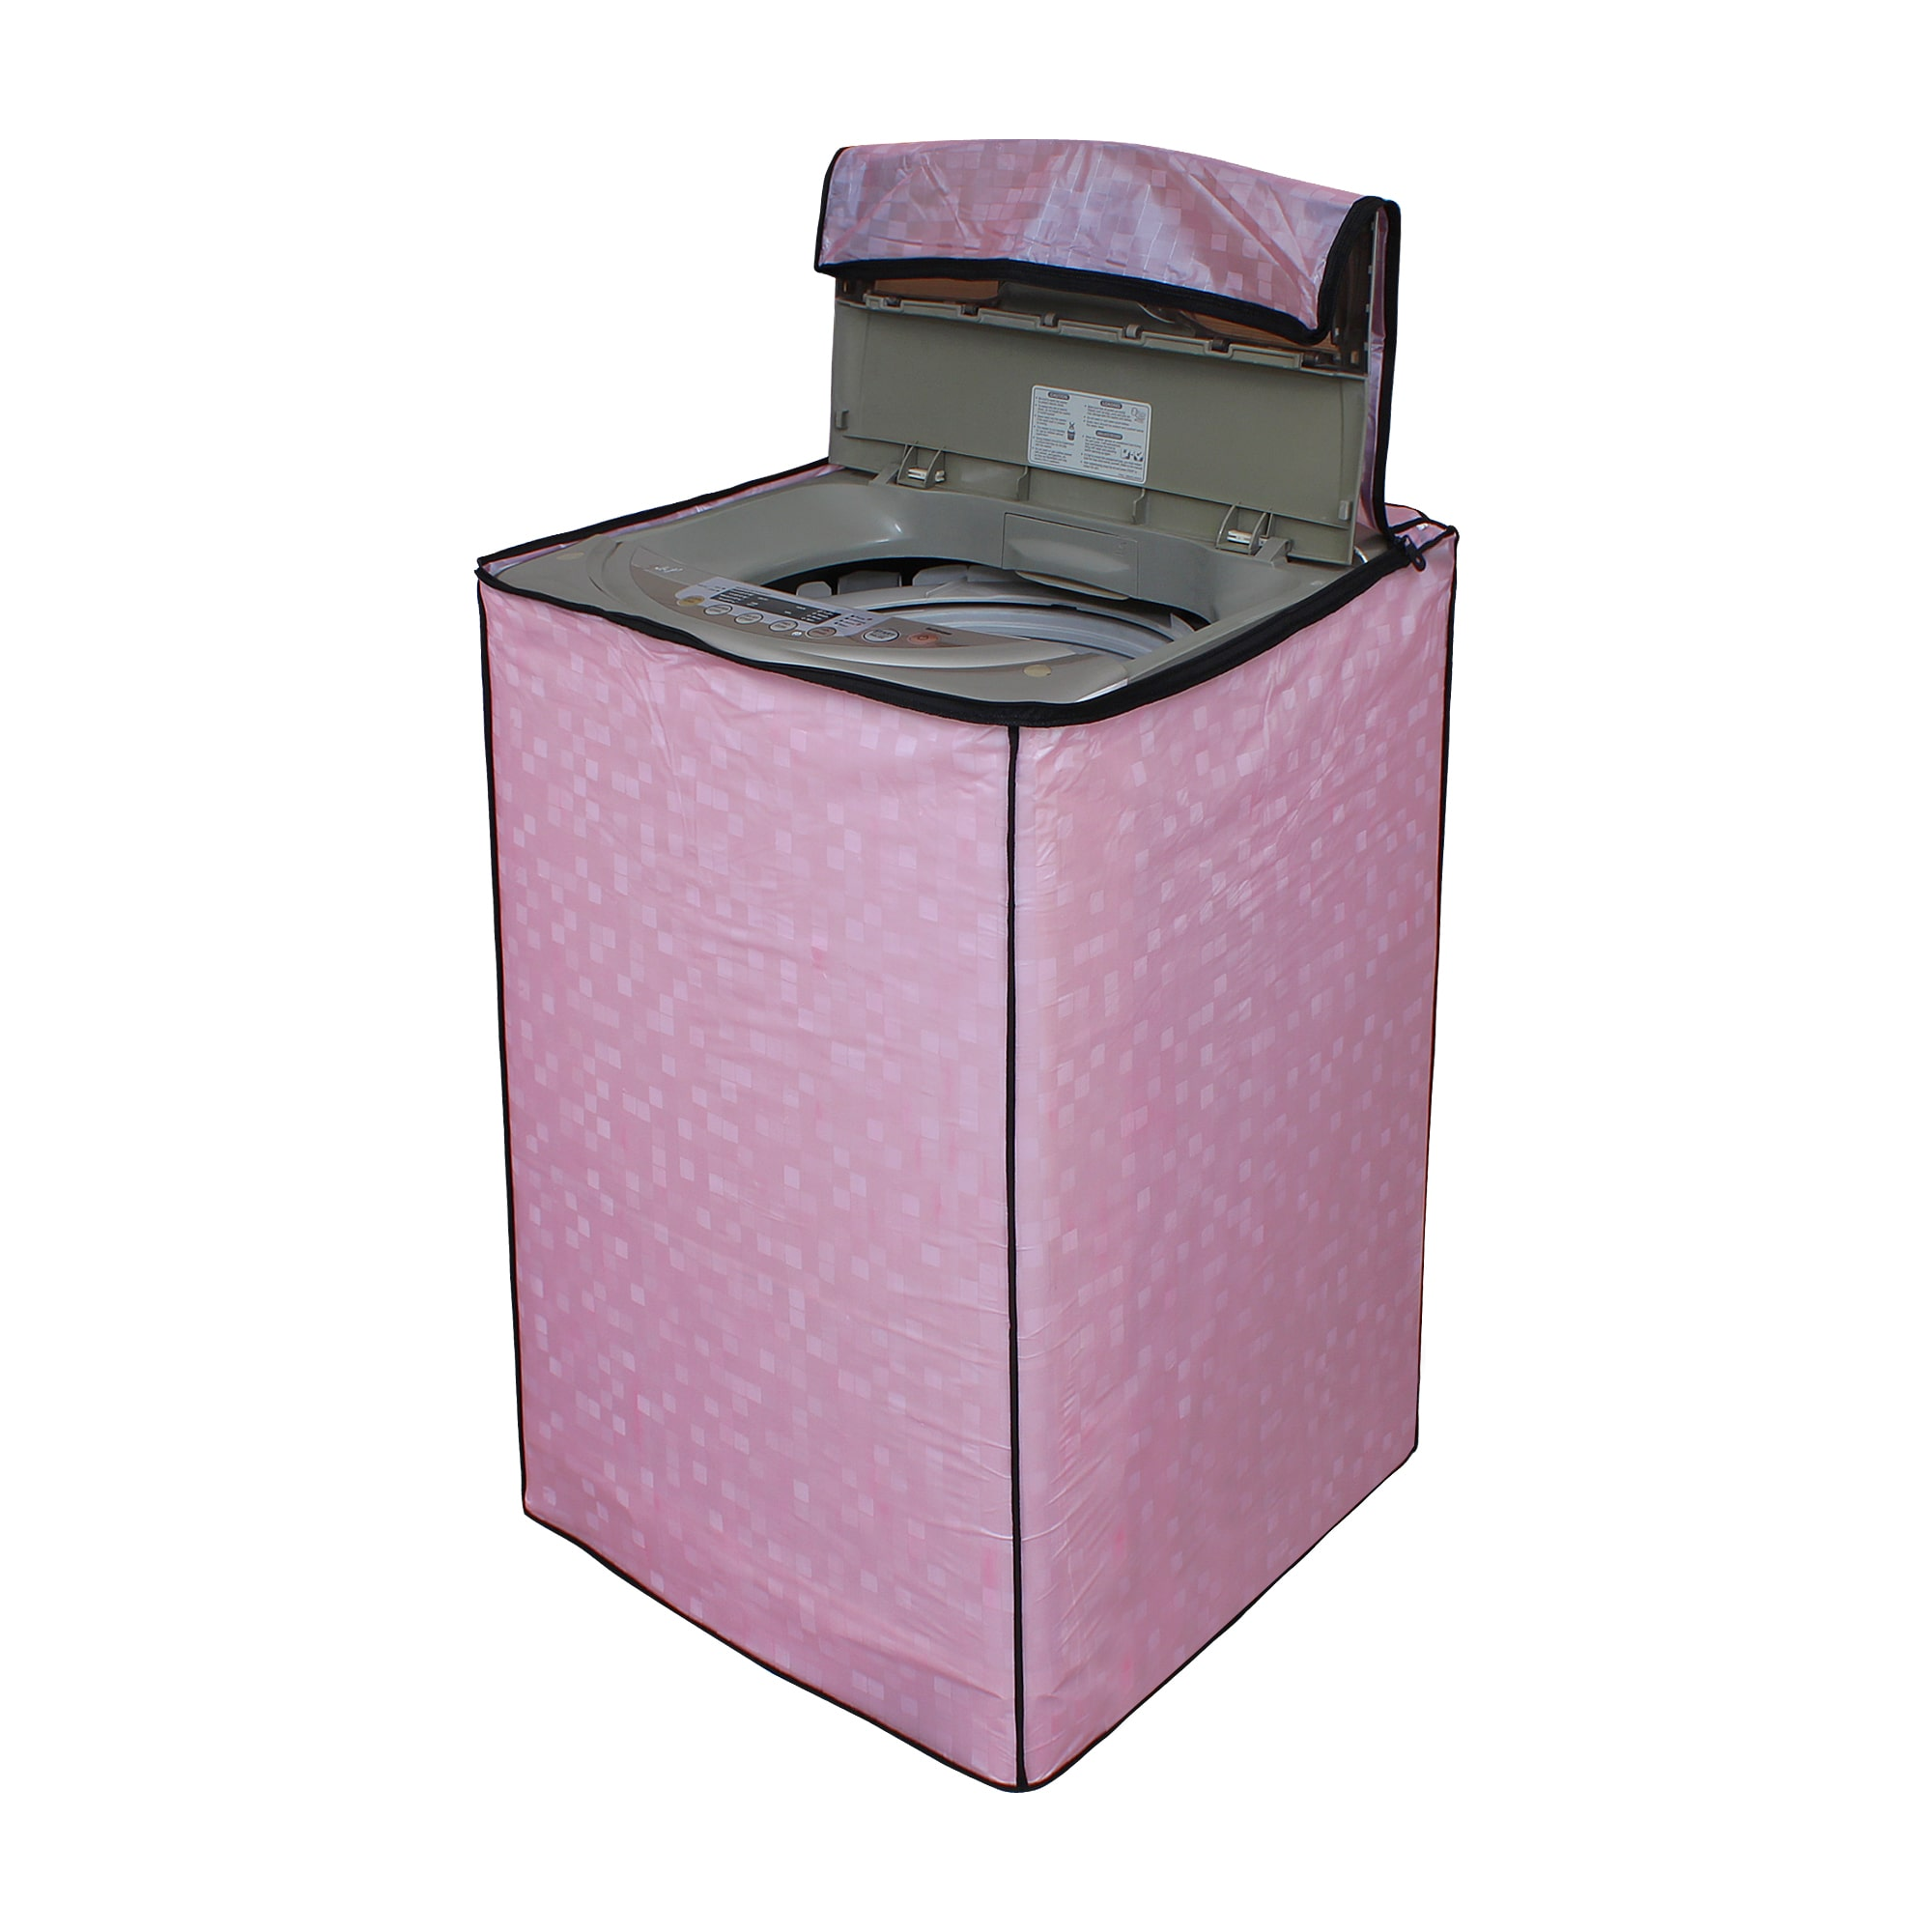 Dream Care Washing Machine Cover For Fully Automatic Top Load Samsung WA62K4200HB 6.2 kg Washing Machine by Dream Care